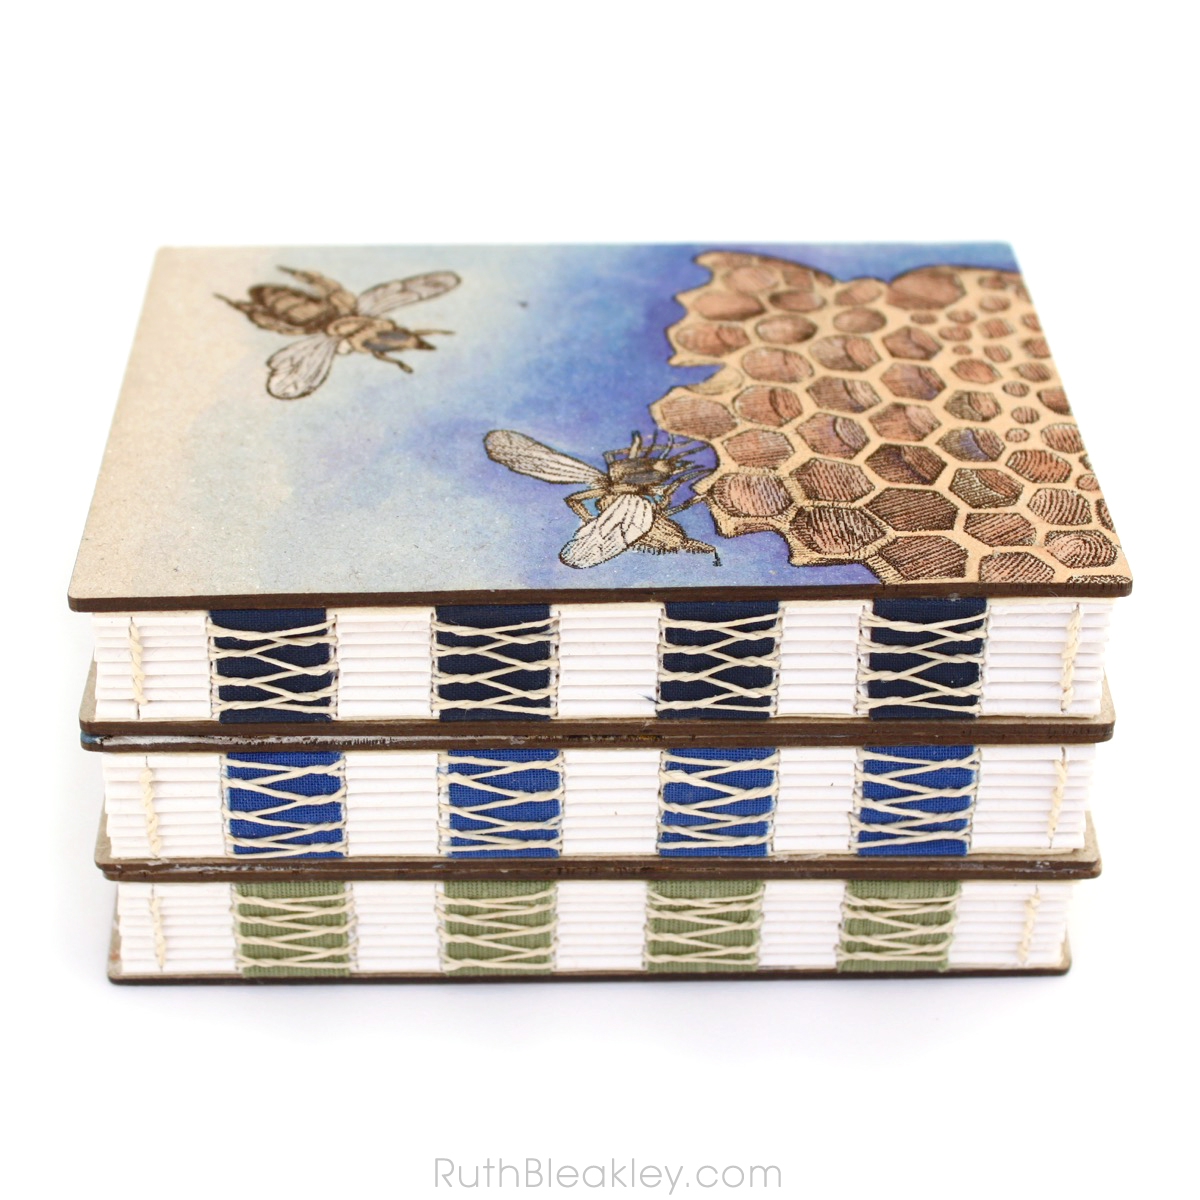 Handpainted Nature Journals sewn with French Link Stitch and engraved with the Glowforge from Book artist Ruth Bleakley - 7